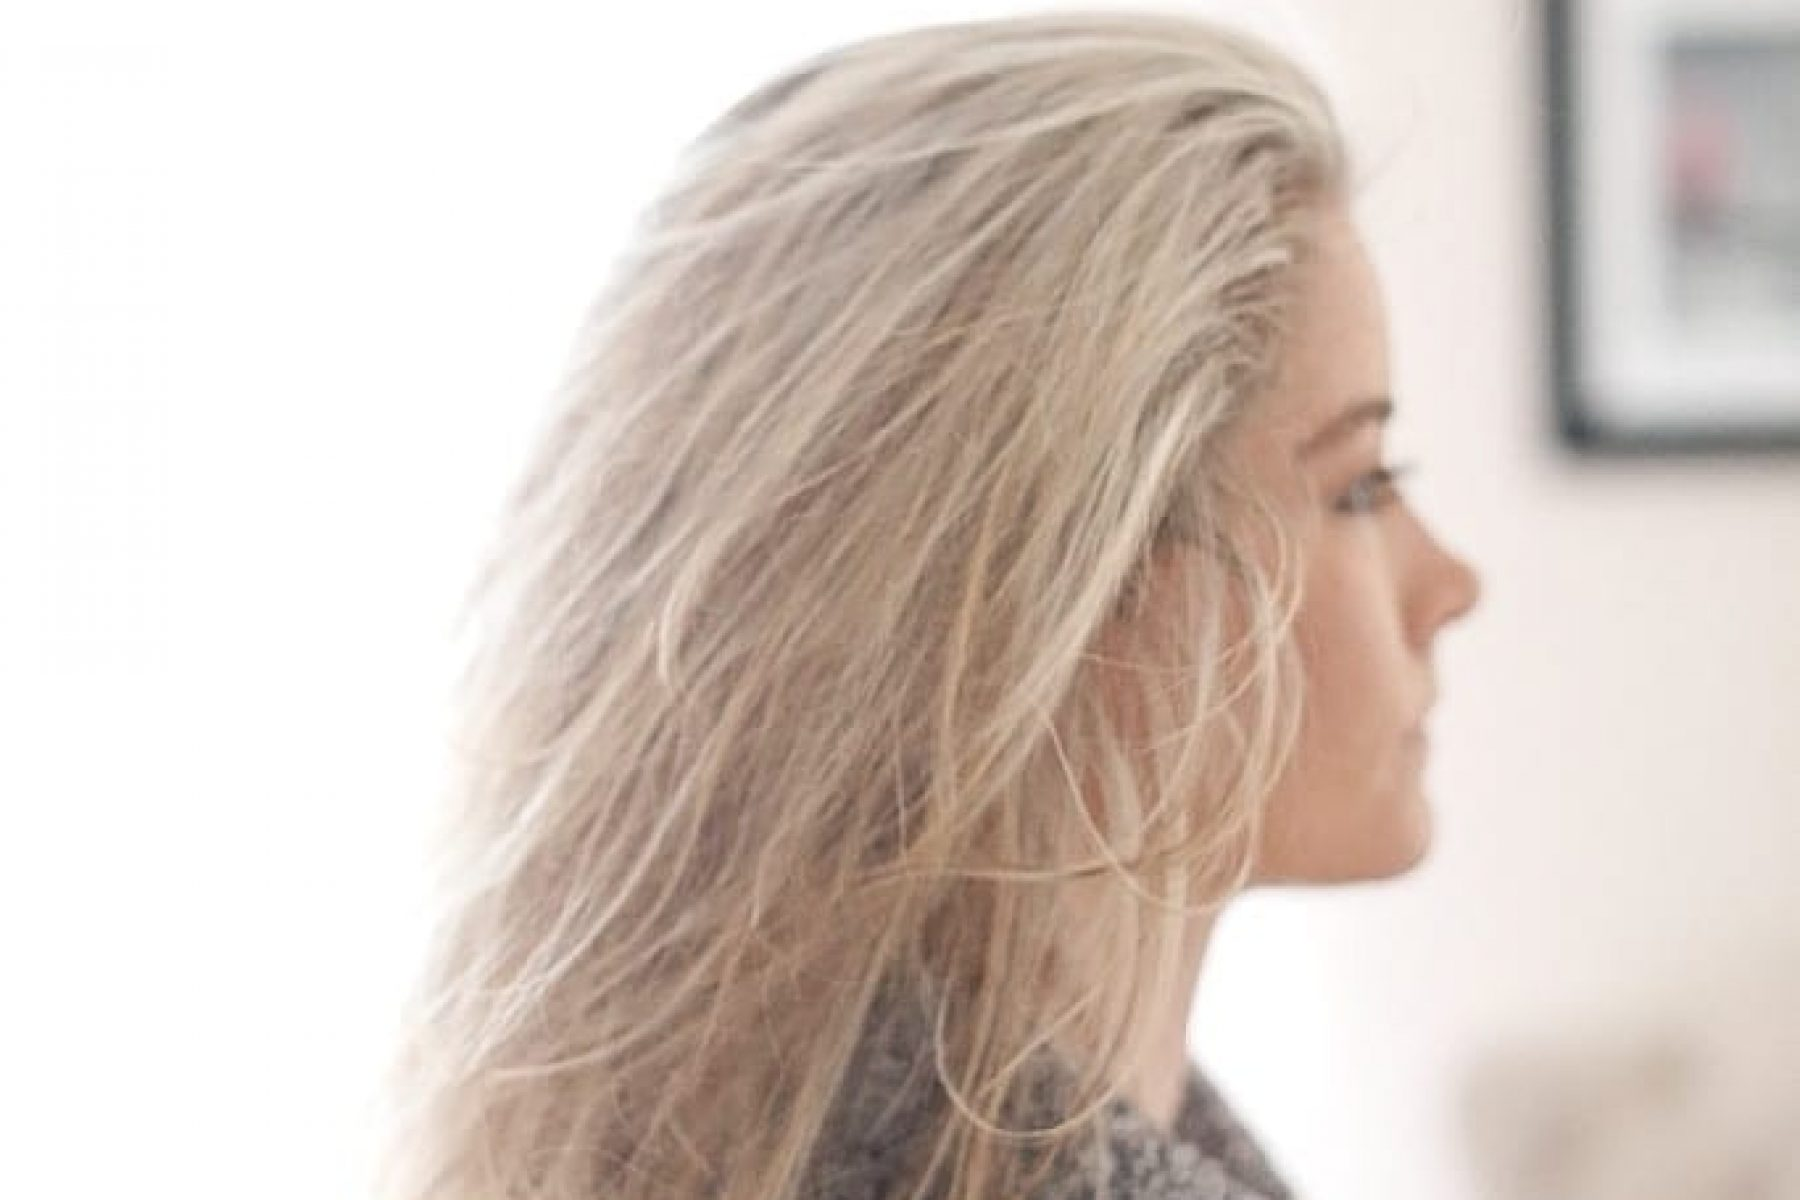 Hair-Care-Beauty-Tips-Afternoon-Espresso-Blogger-Hair Care (12 of 21)